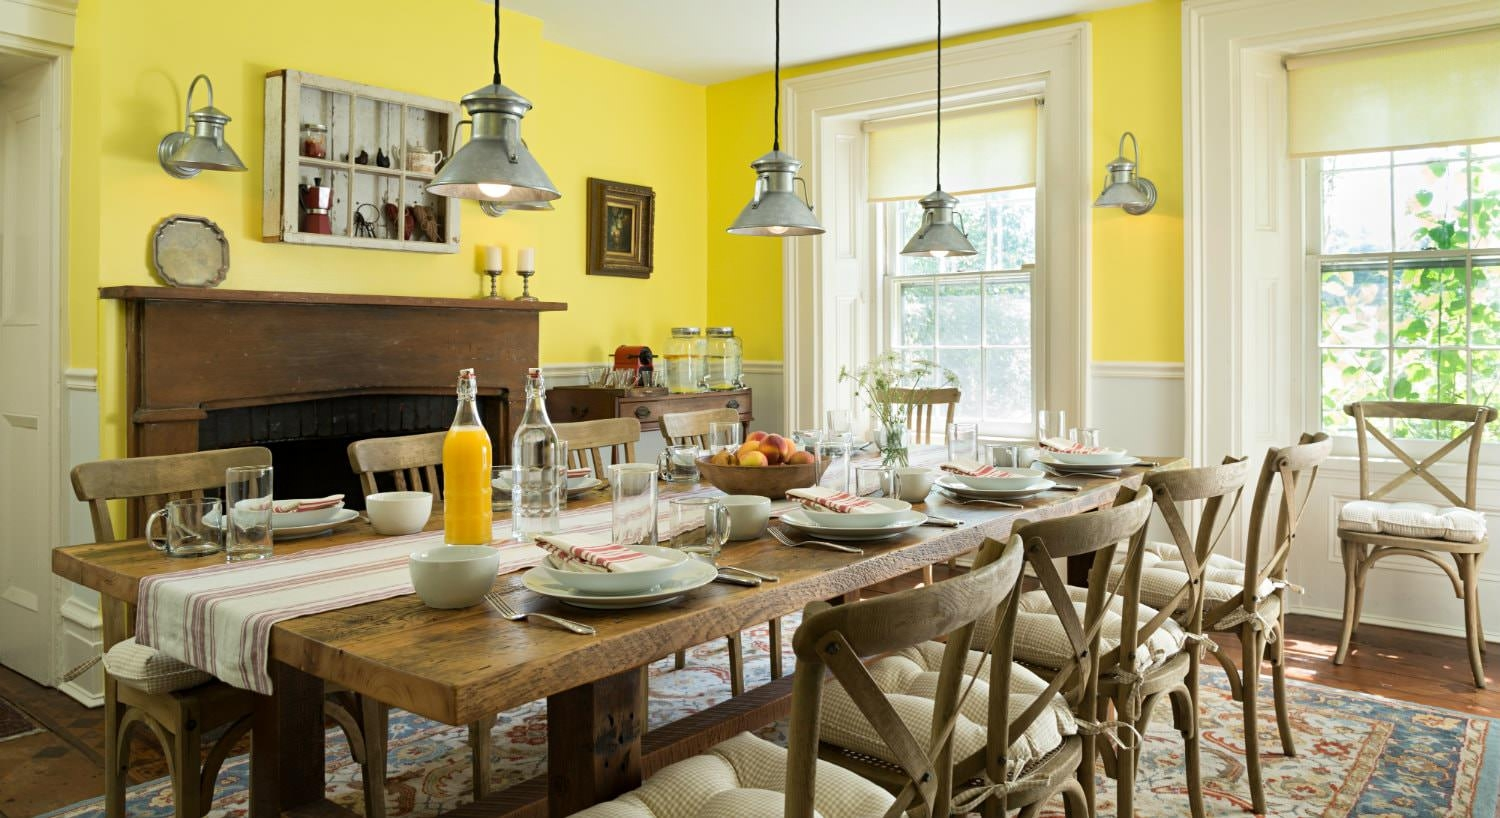 Spacious yellow dining room with fireplace, large windows, rustic table for eight set for breakfast